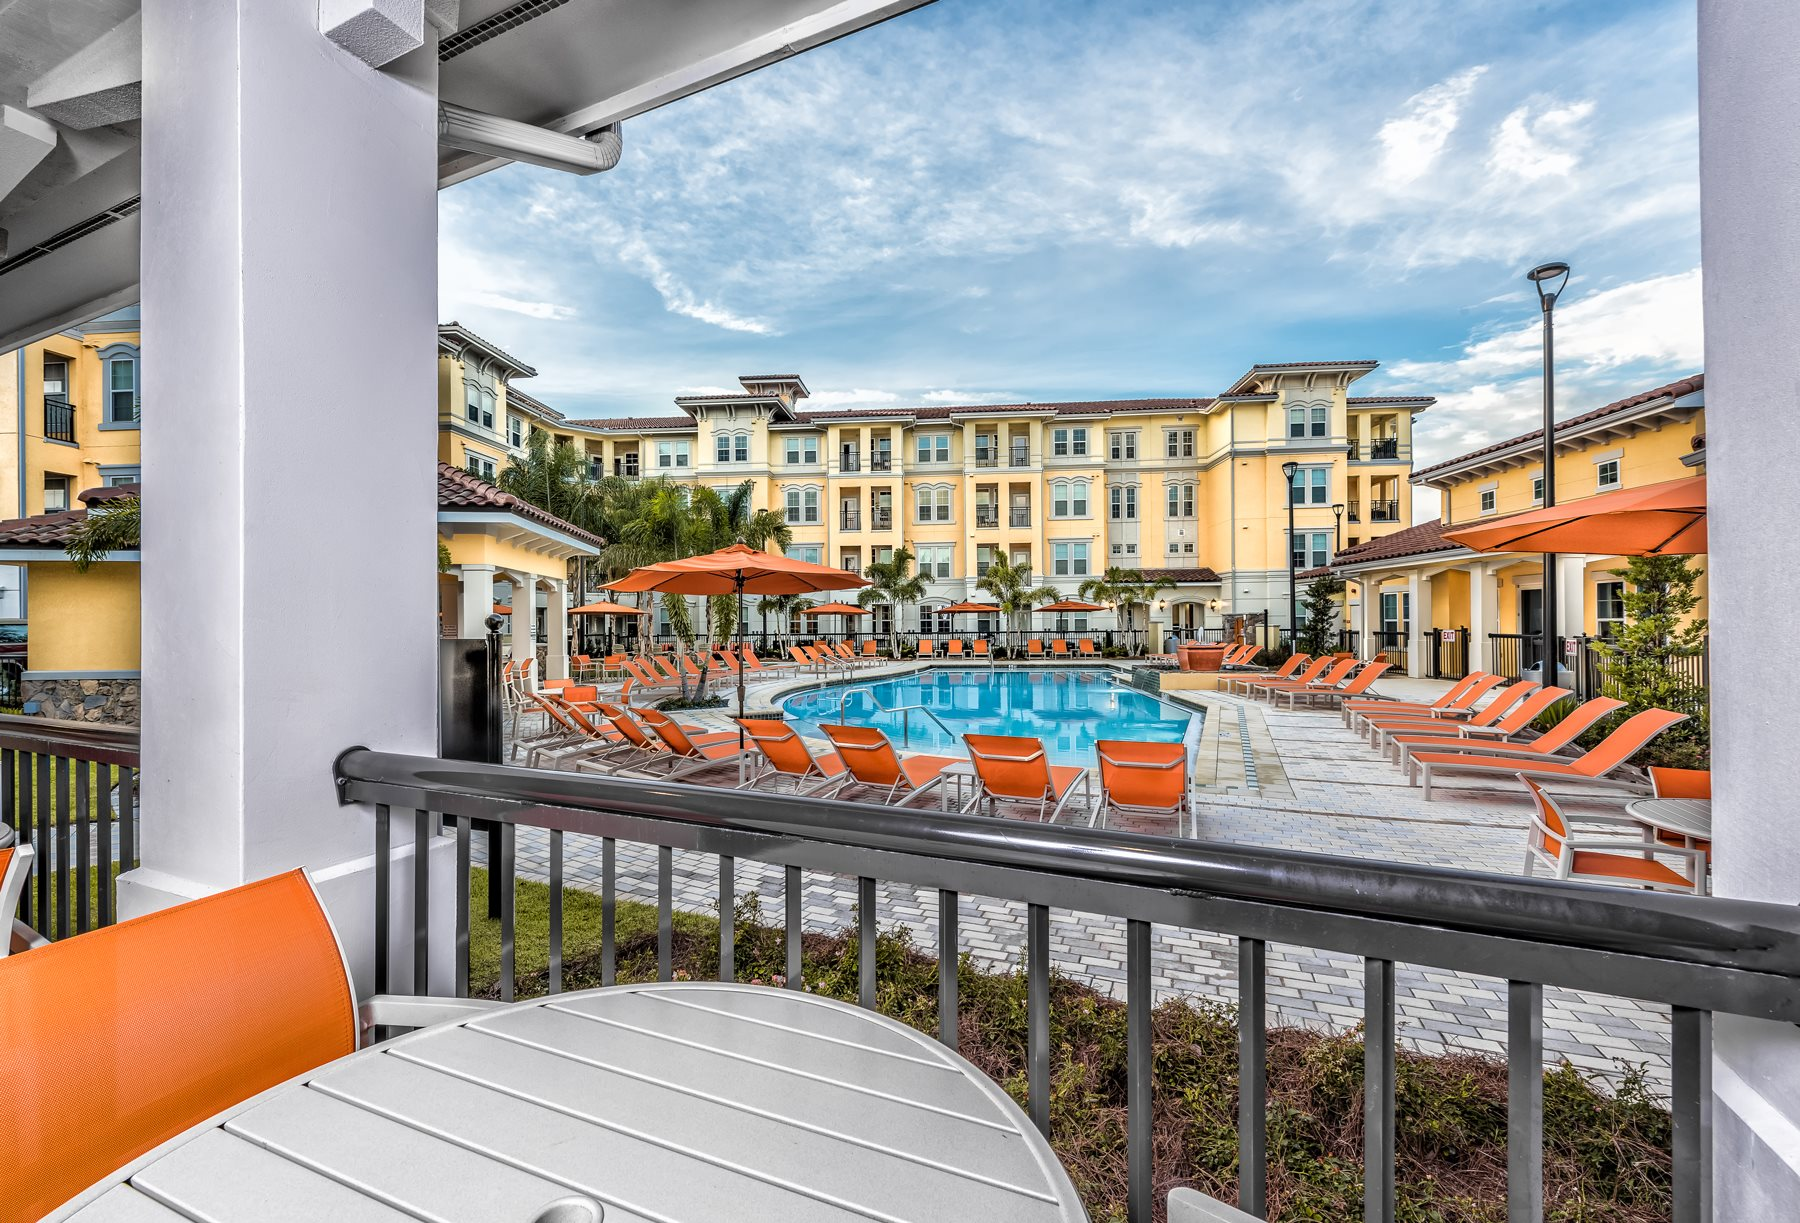 Outdoor Dining Area with Pool View at  Lugano Apartments, Kissimmee Florida